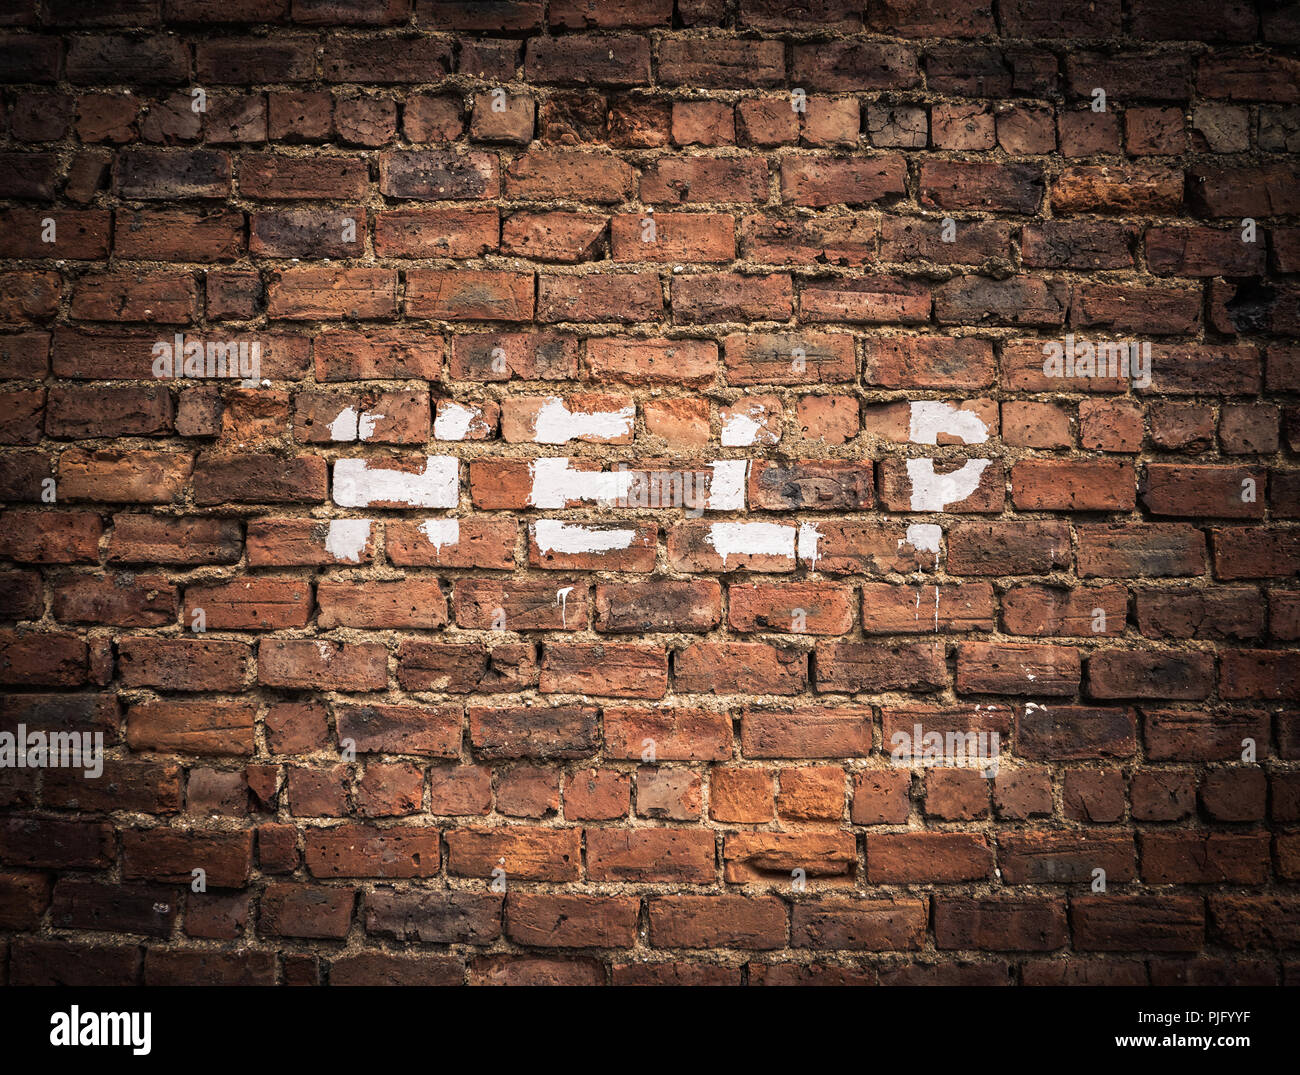 The Word Help Written As Graffiti On A Vintage Red Brick Wall - Stock Image